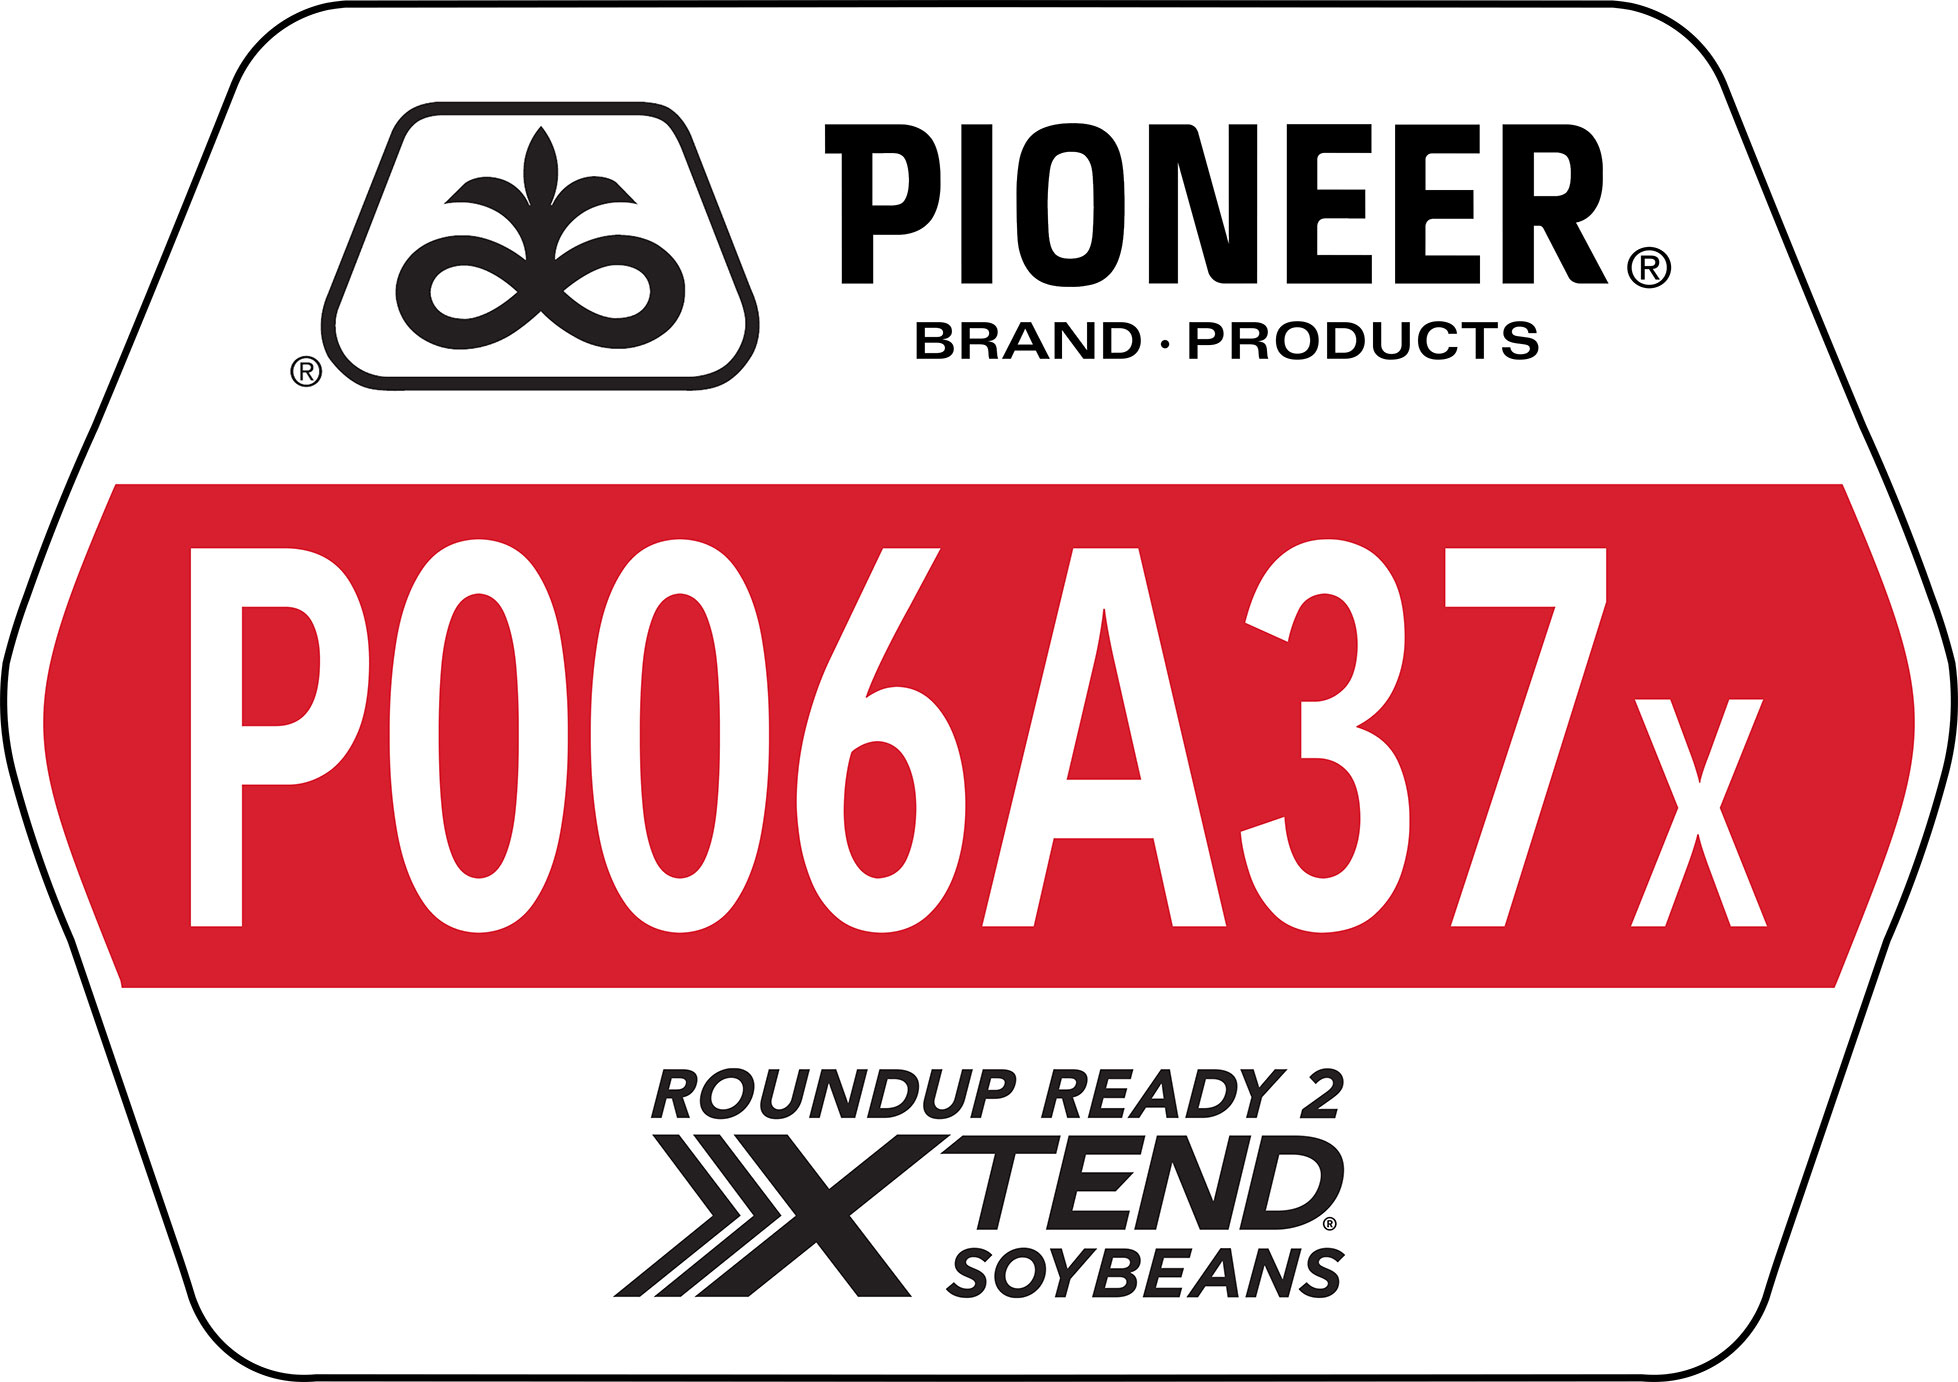 Seed - Pioneer - Soybeans - P006A37X